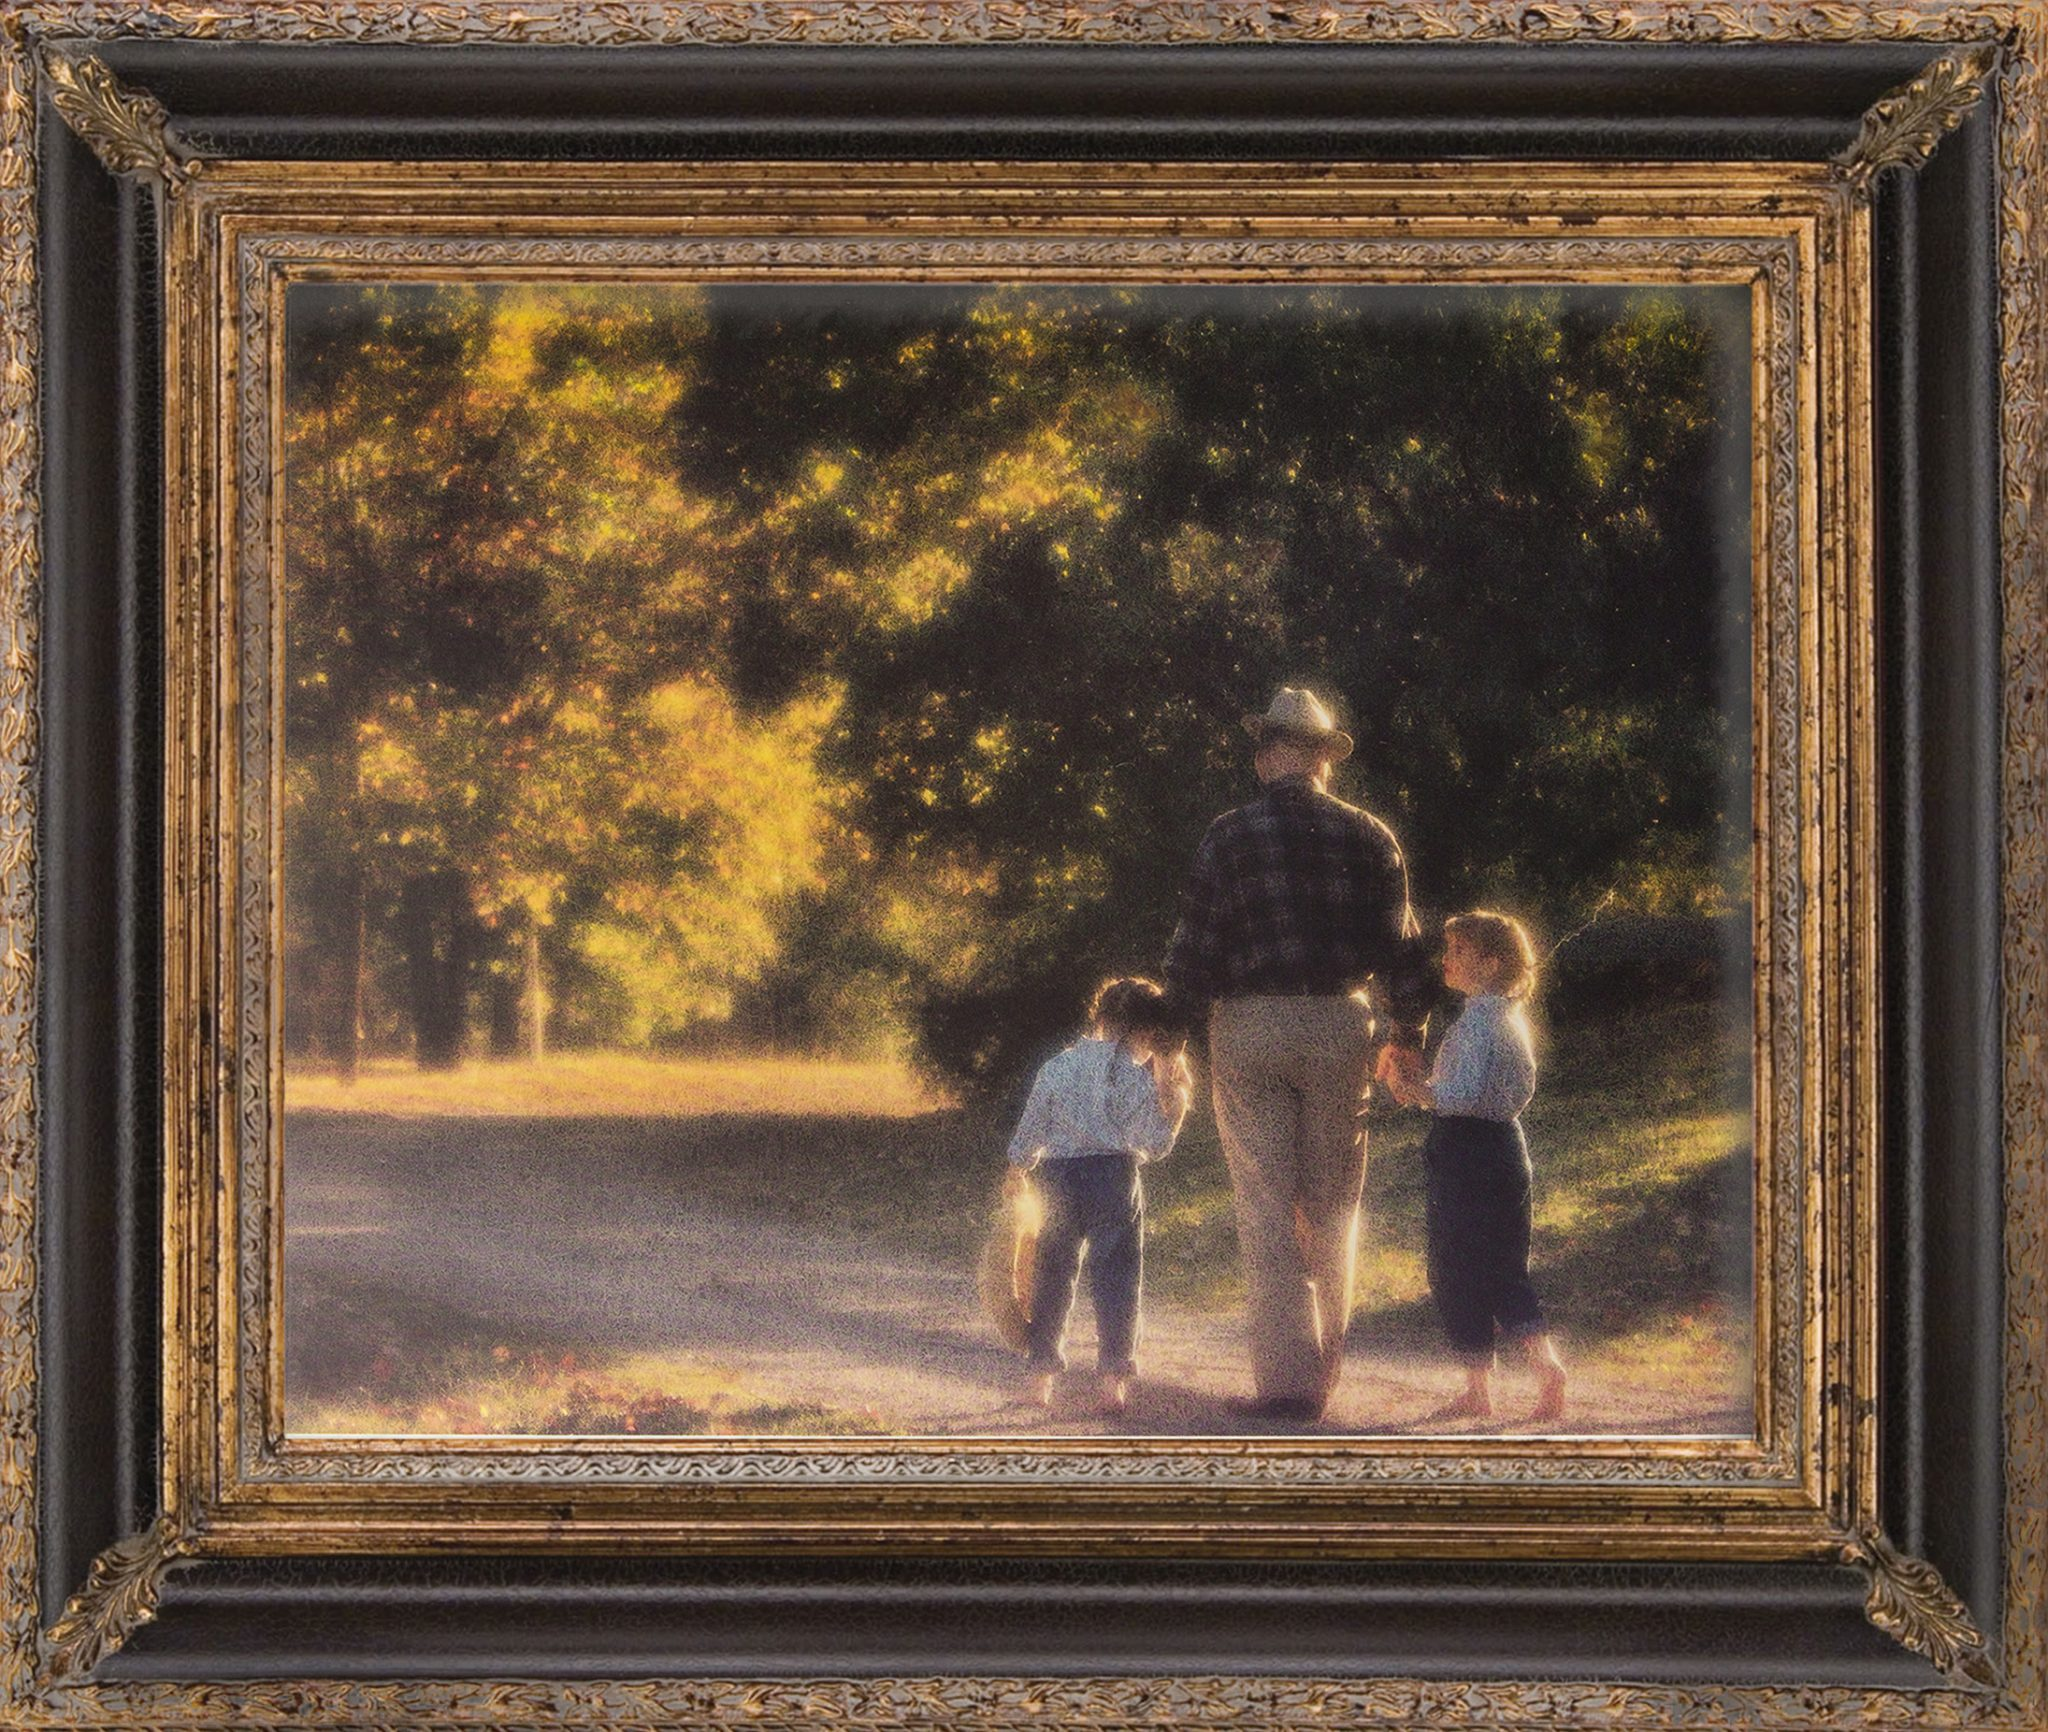 portrait of two young girls walking on a sunlit country road with grandpa